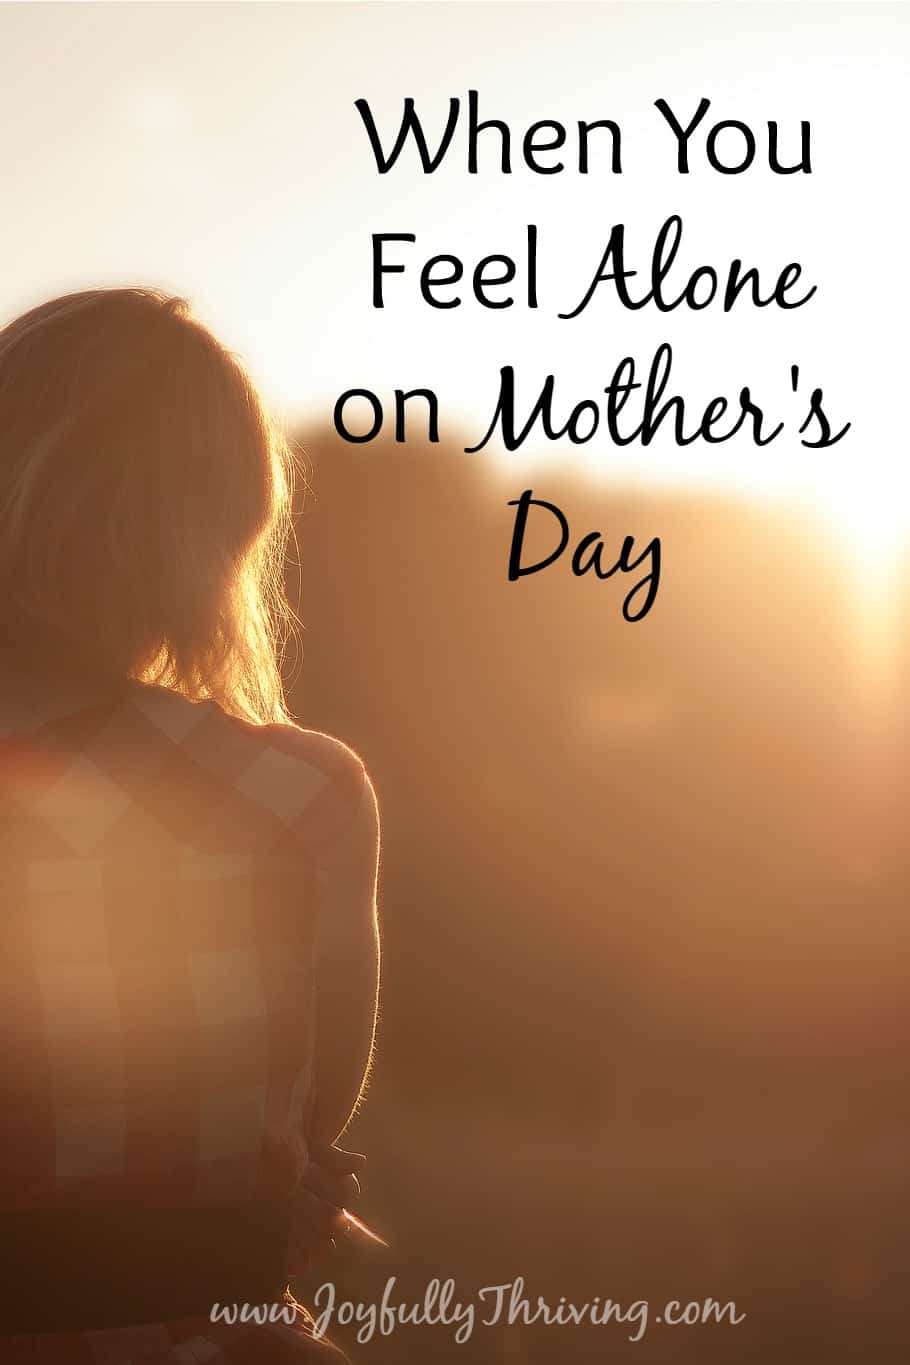 Mother's Day can be hard, for so many of us women! I needed to read this reminder that I'm not alone on Mother's Day - or any day!